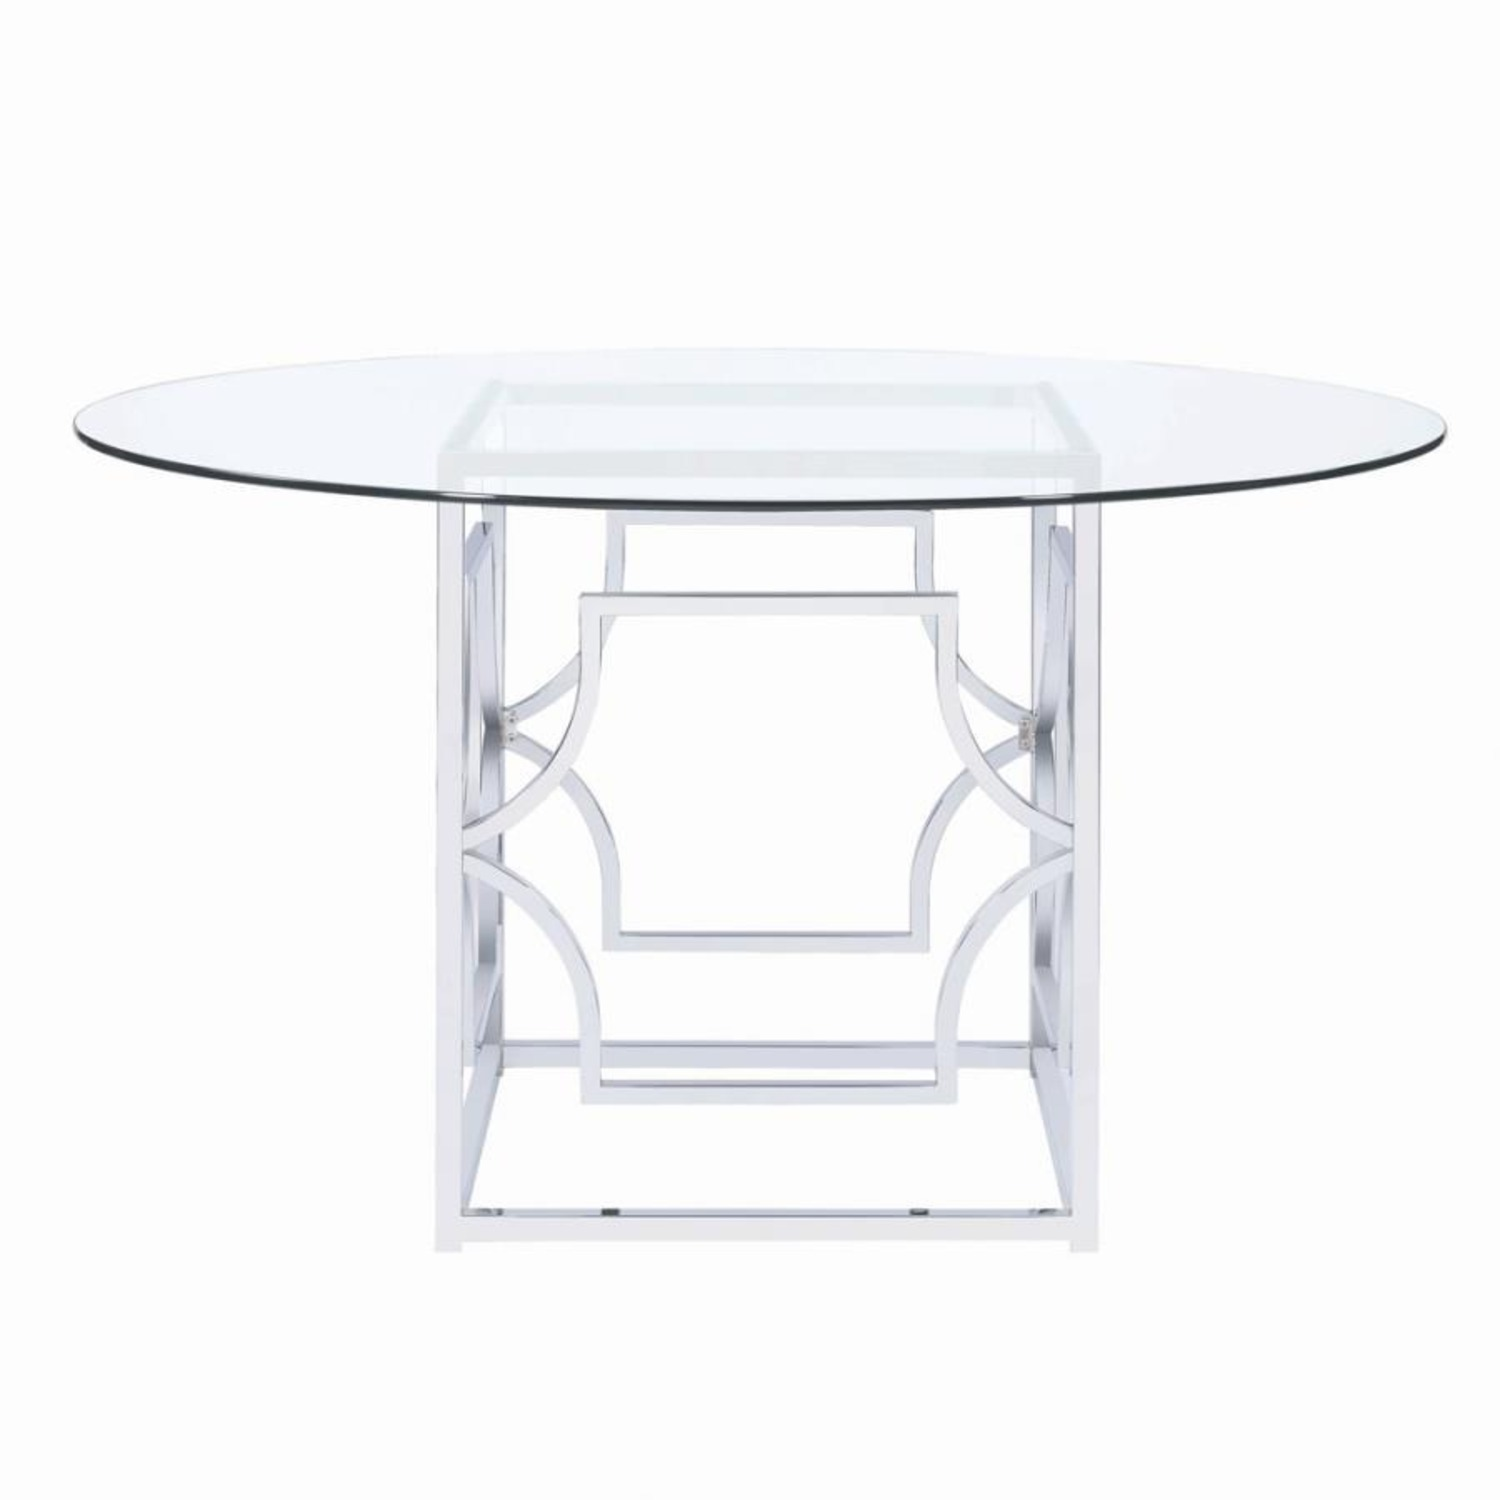 Dining Table In Chrome Patterned Base - image-2